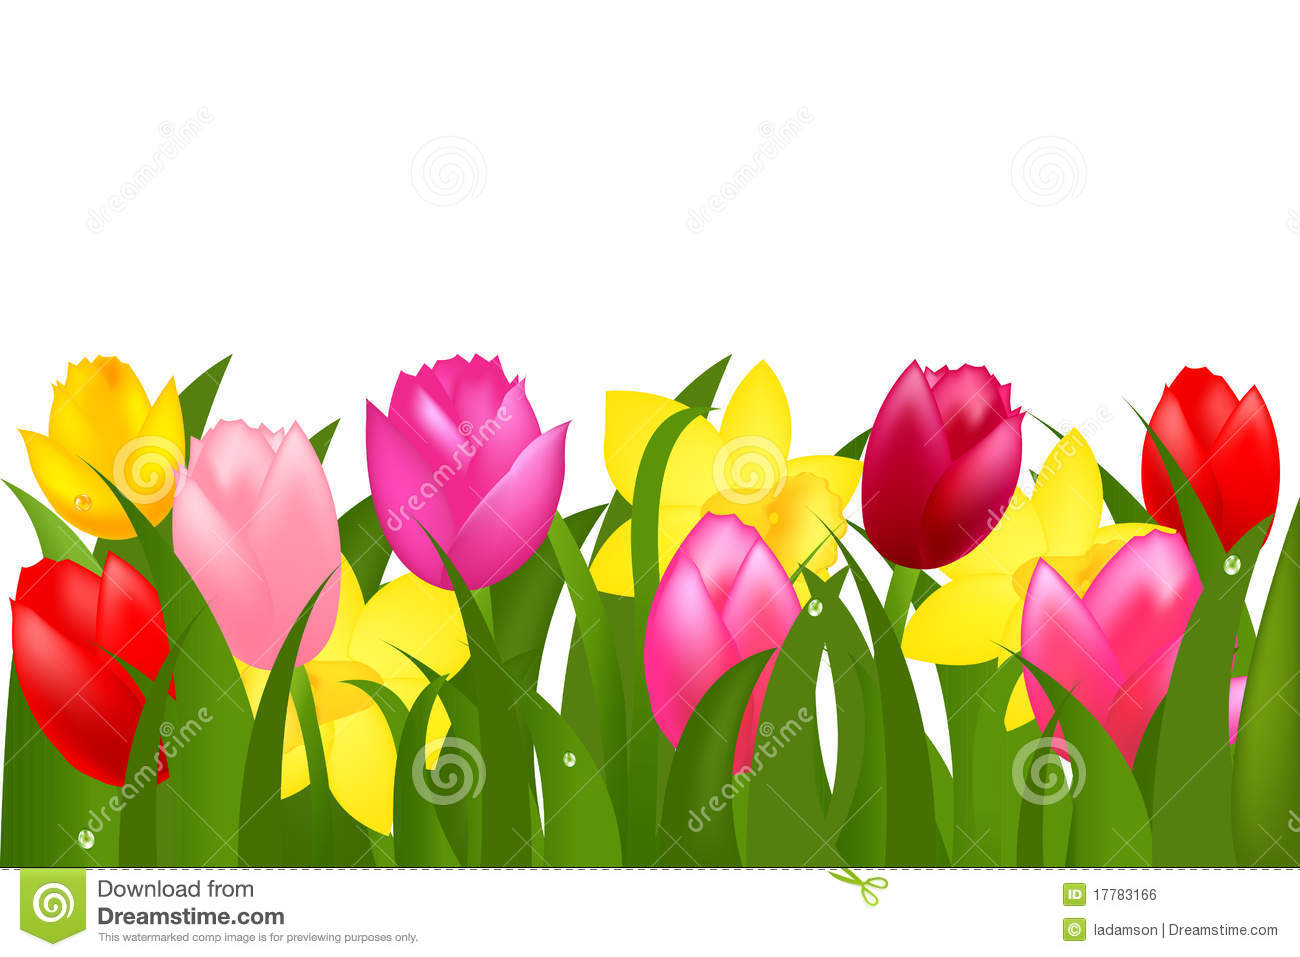 Frame clipart tulip Tulips Tulips Spring Clipart cliparts